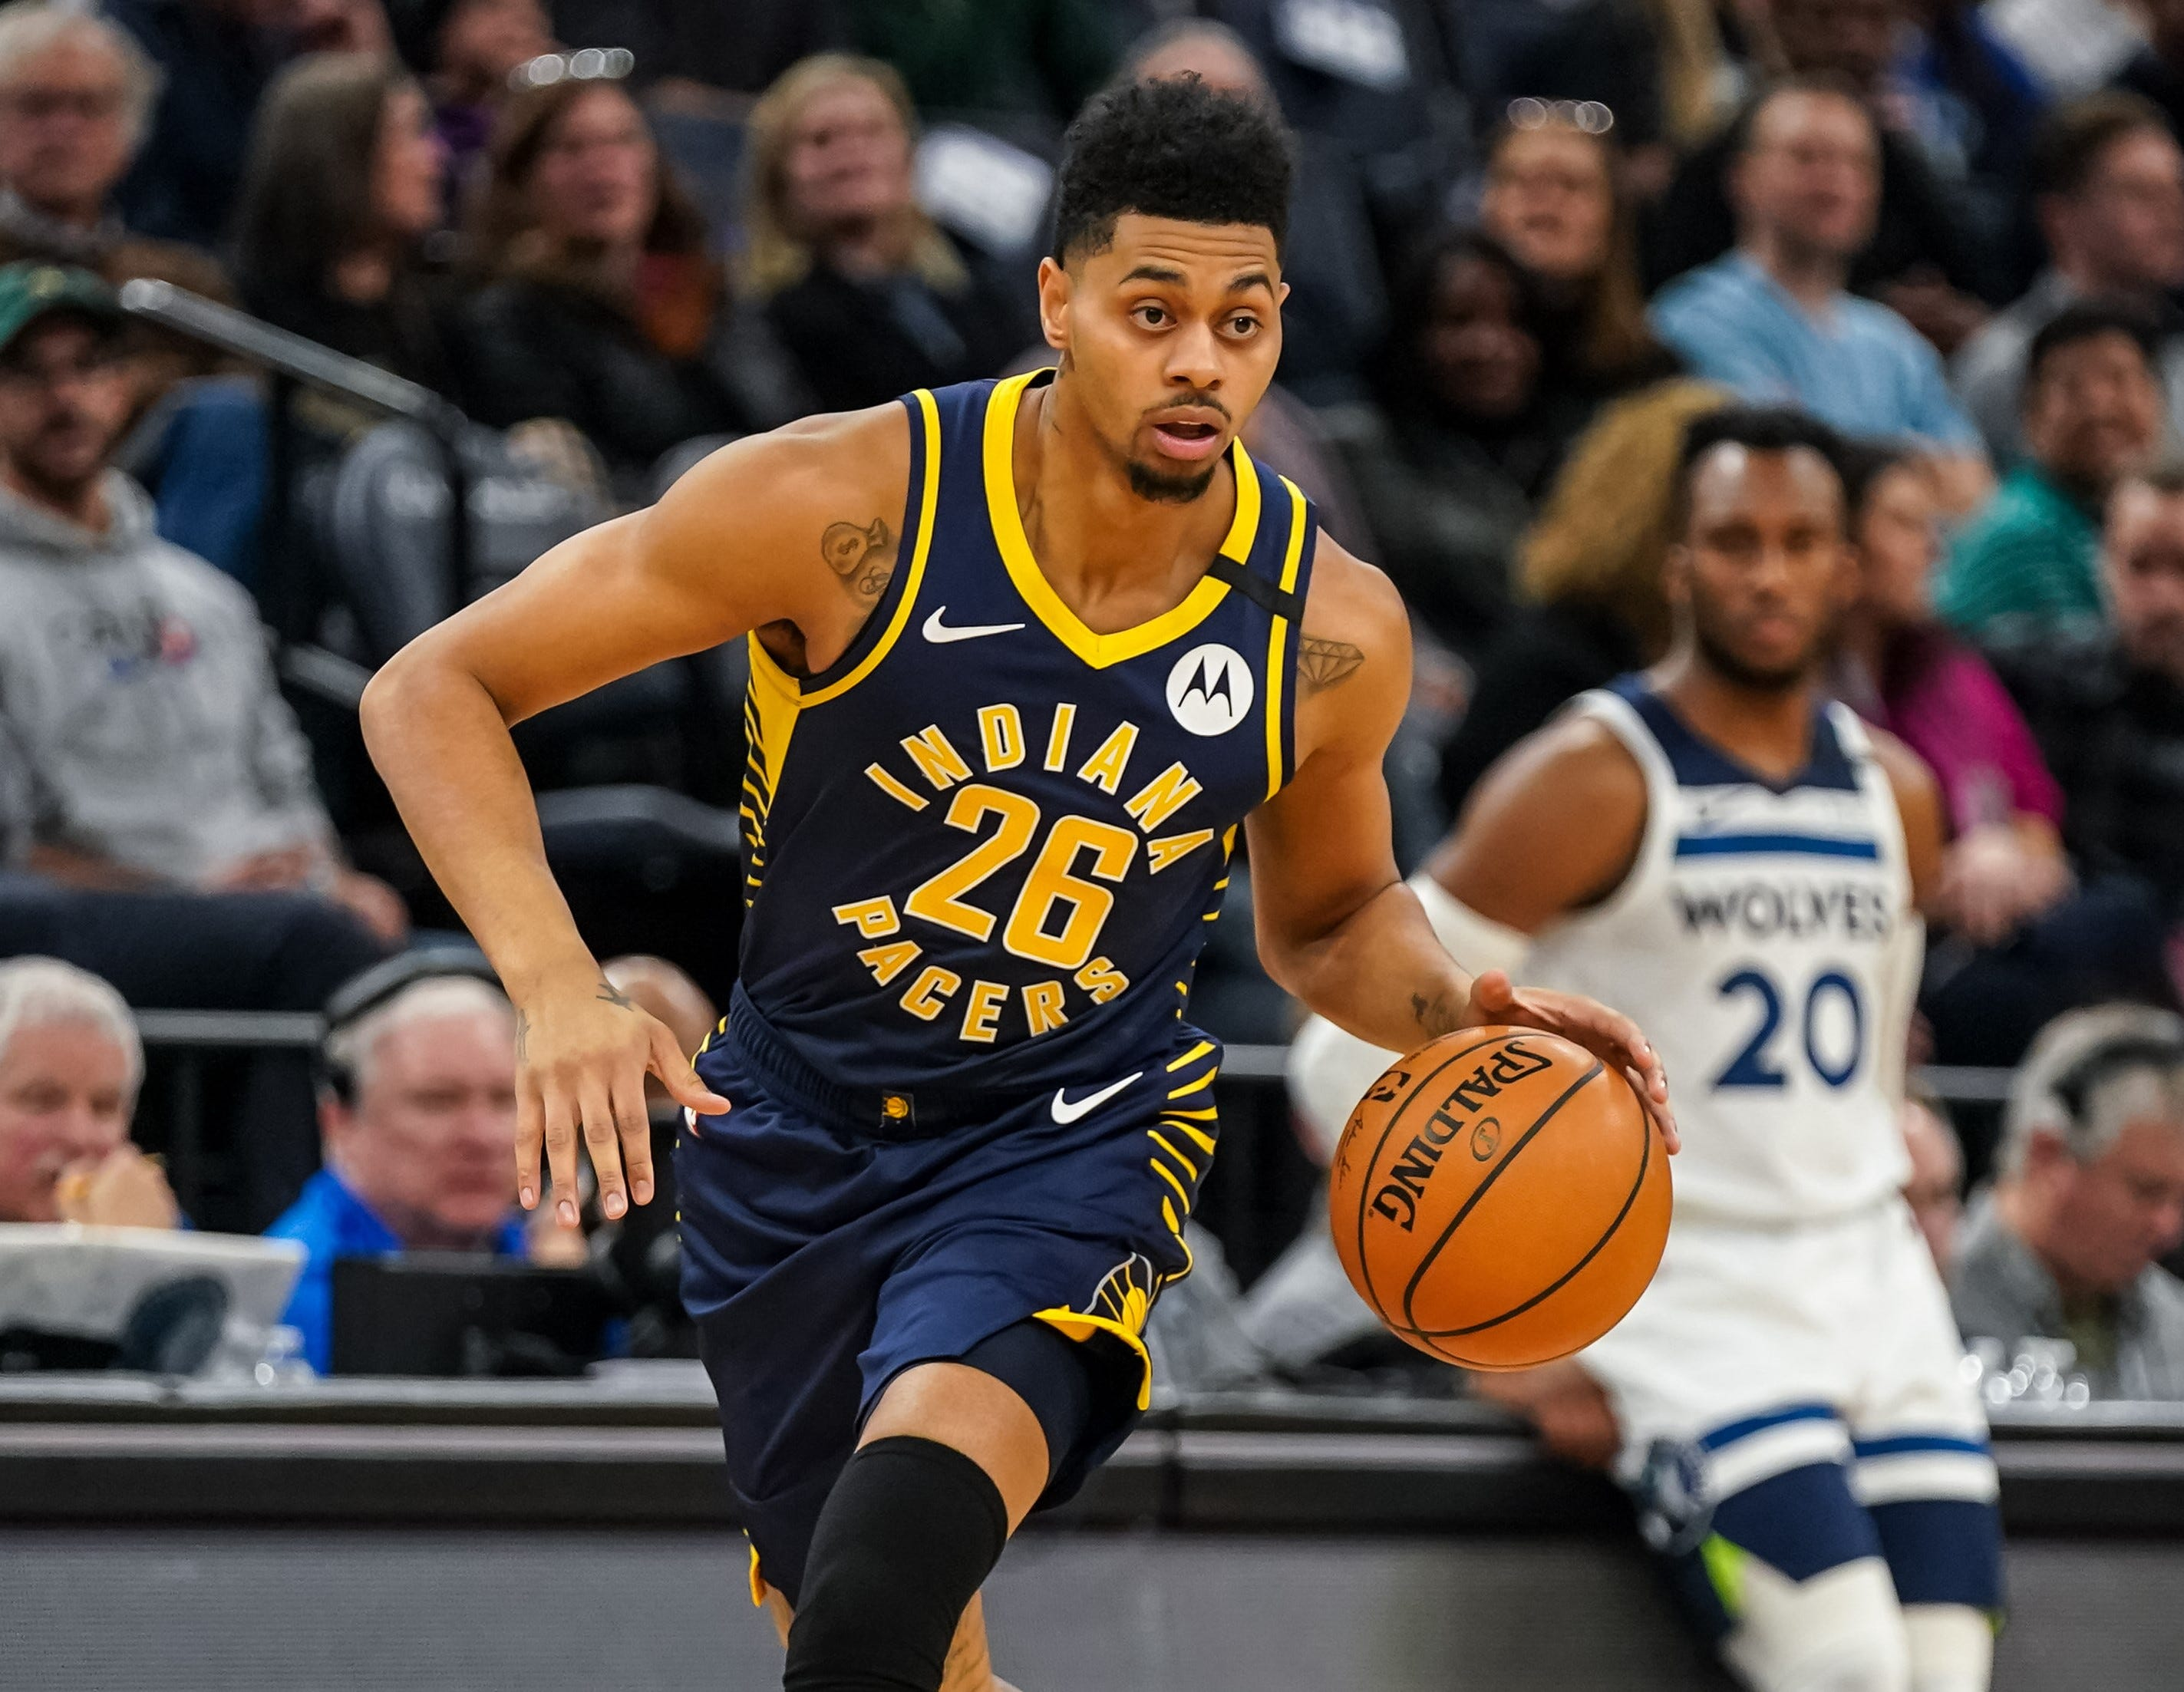 Pacers' Jeremy Lamb suffers season-ending injury; teammate Victor Oladipo understands the frustration